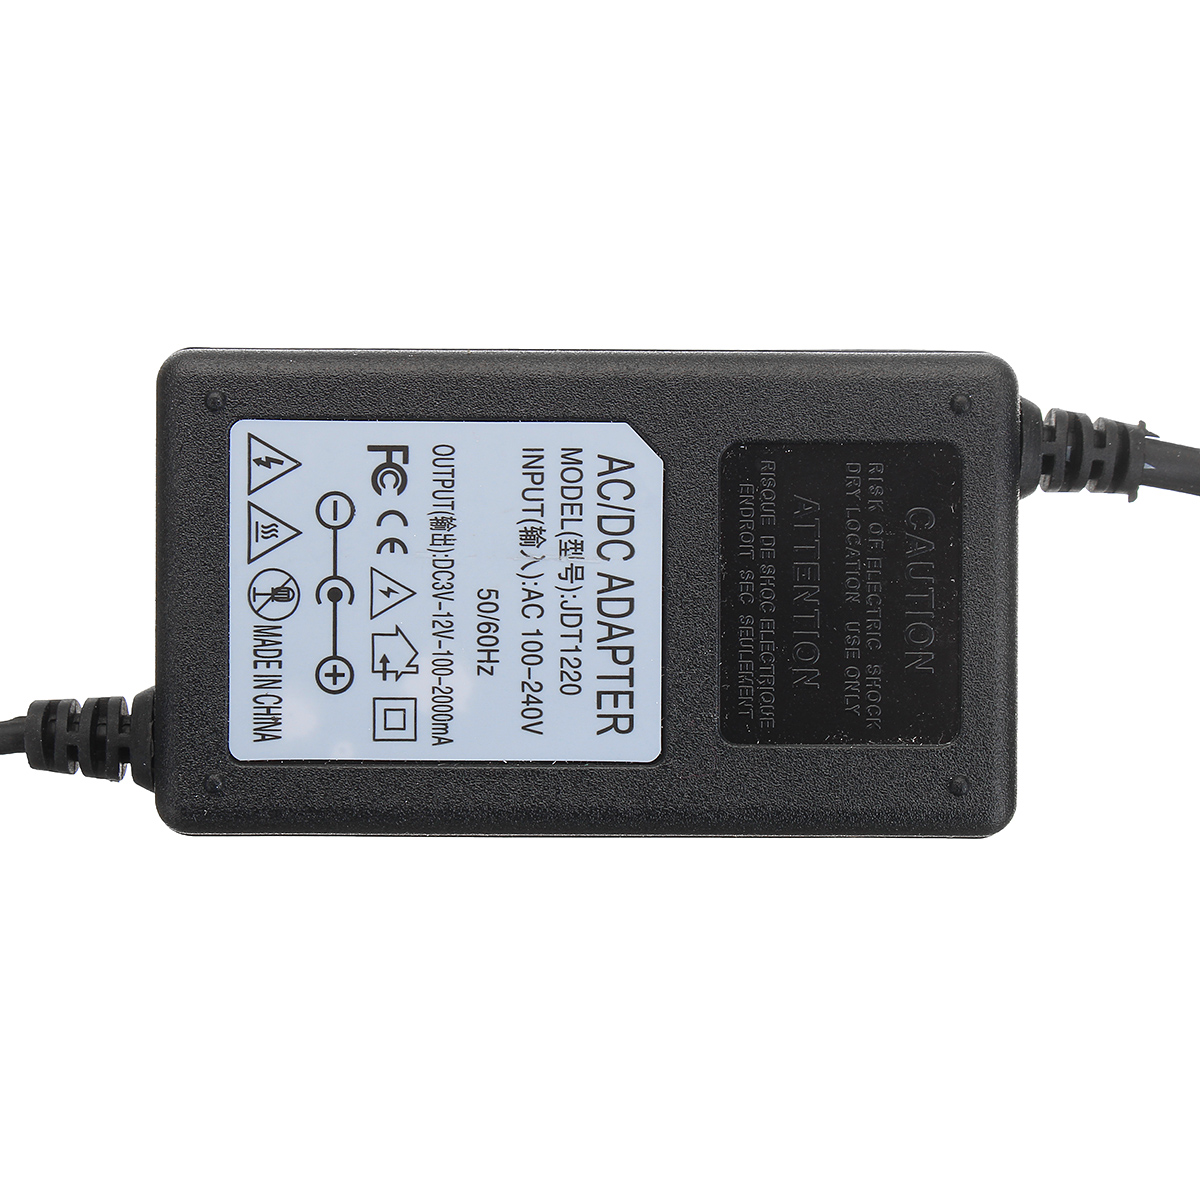 DC 3-12V 2A 24W Adjustable AC/DC Adapter Power Supply Switching Motor Speed Controller